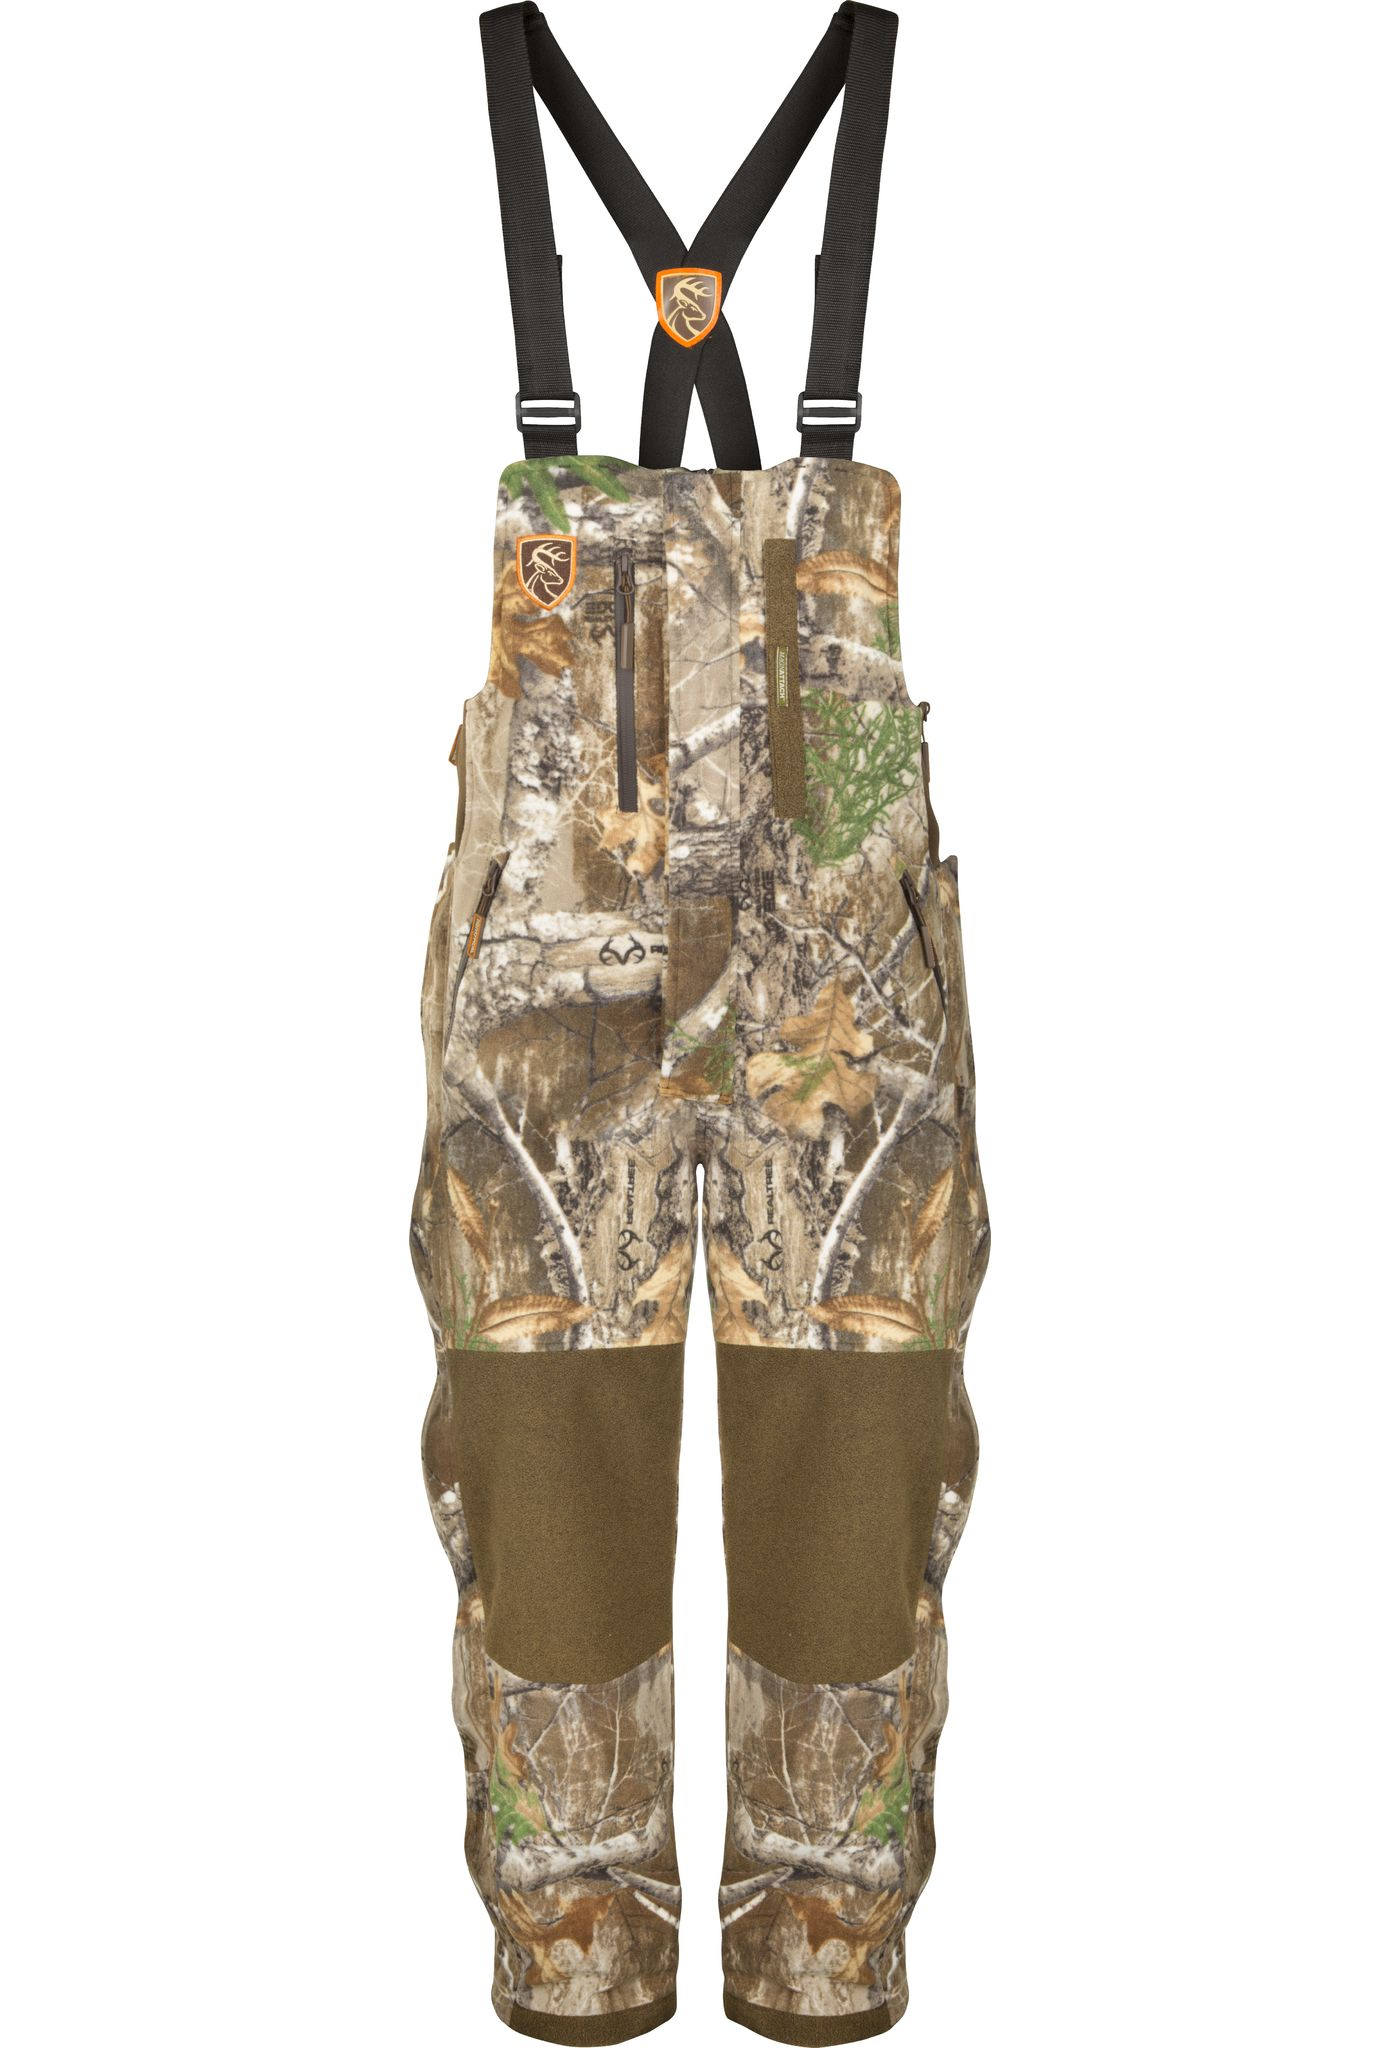 Drake Waterfowl Men's Non-Typical HydroHush Heavyweight Bibs with Agion Active XL